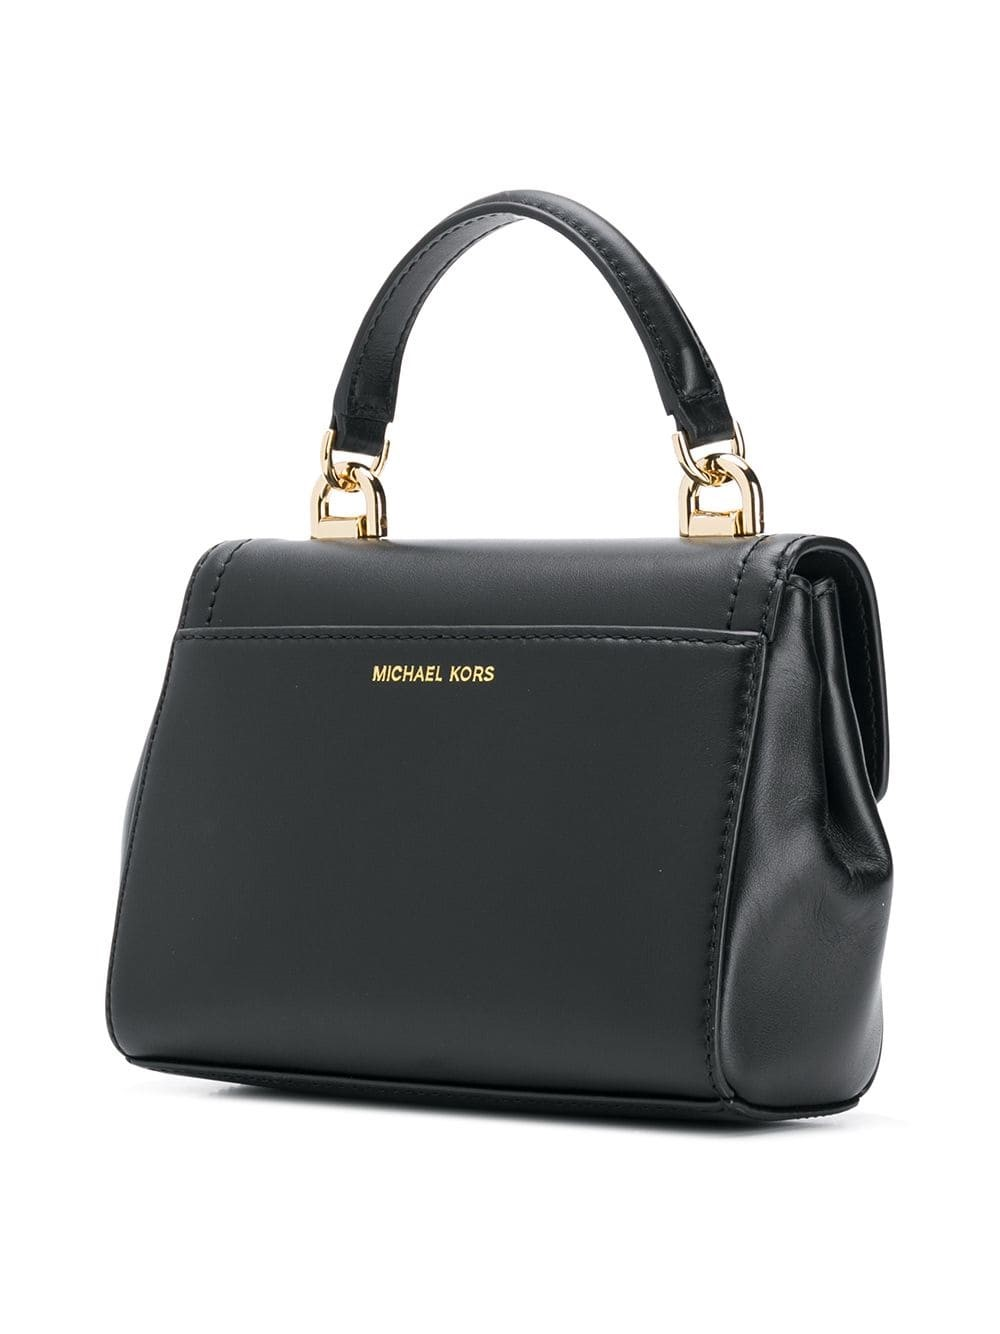 3fe0854016e5 michael kors mk TOTE BAG available on montiboutique.com - 24661